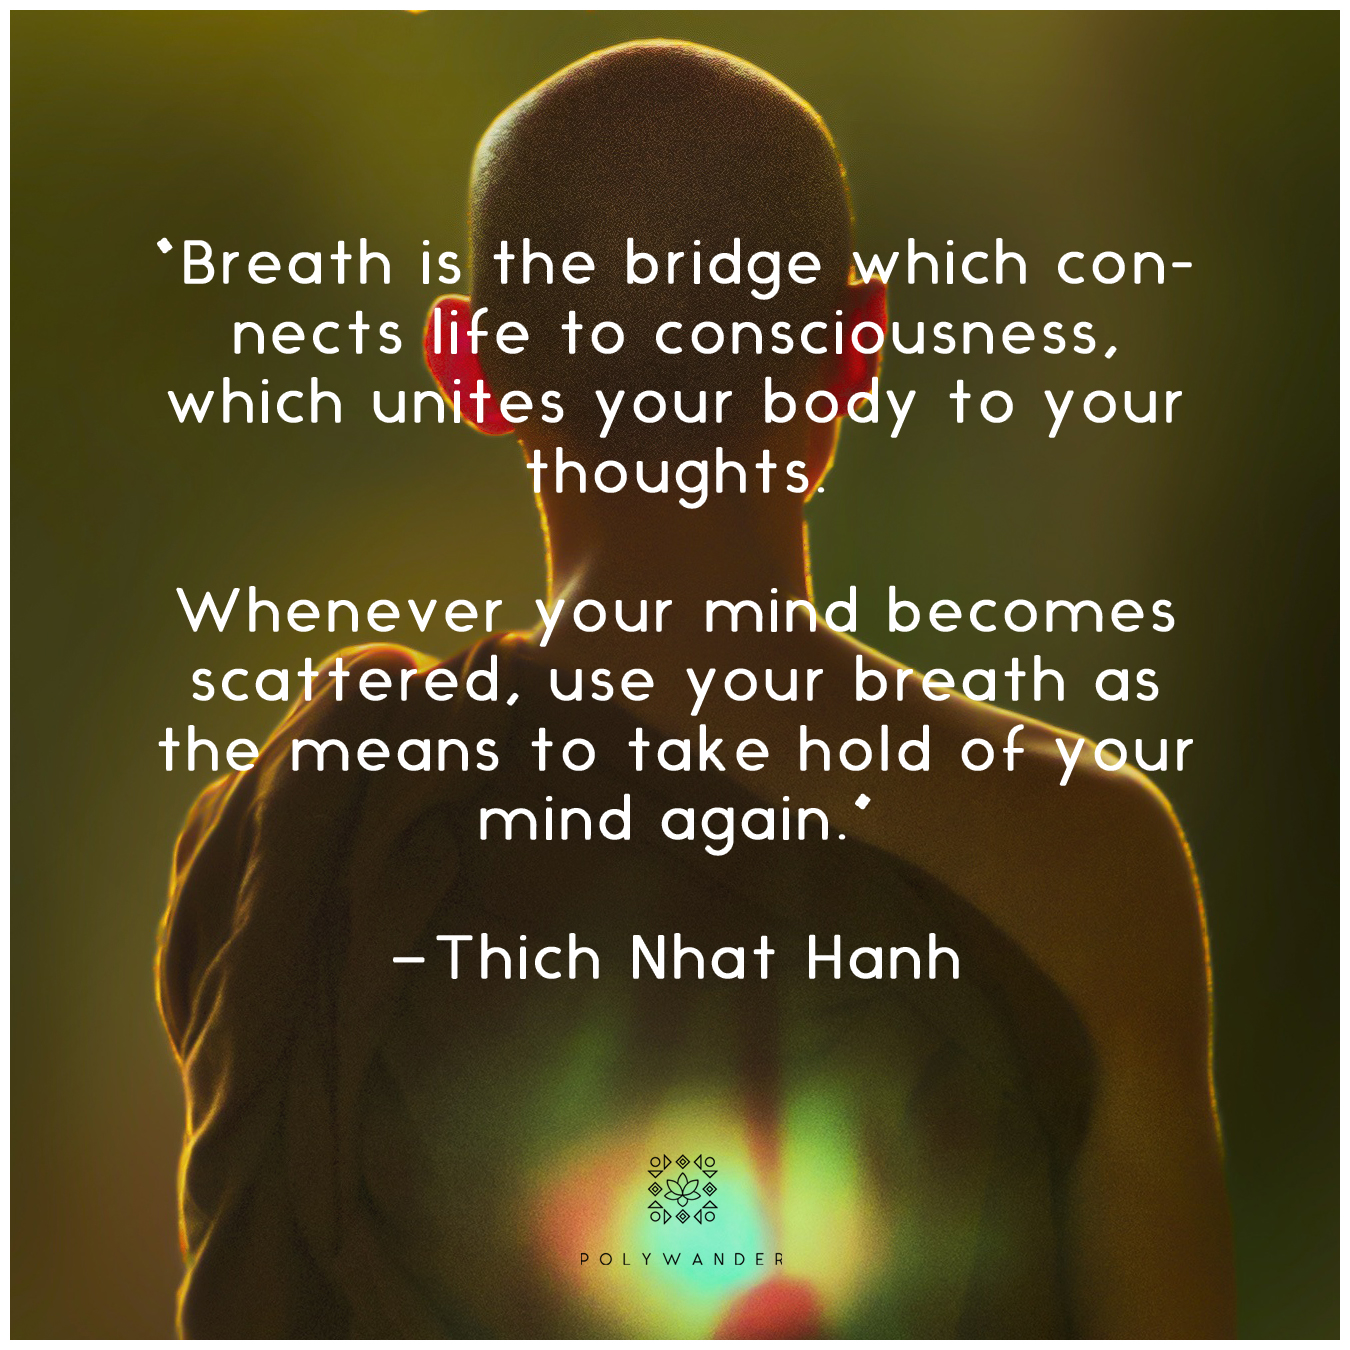 """Breath is the bridge which connects life to consciousness, which unites your body to your thoughts. Whenever your mind becomes scattered, use your breath as the means to take hold of your mind again."" —Thich Nhat Hanh"